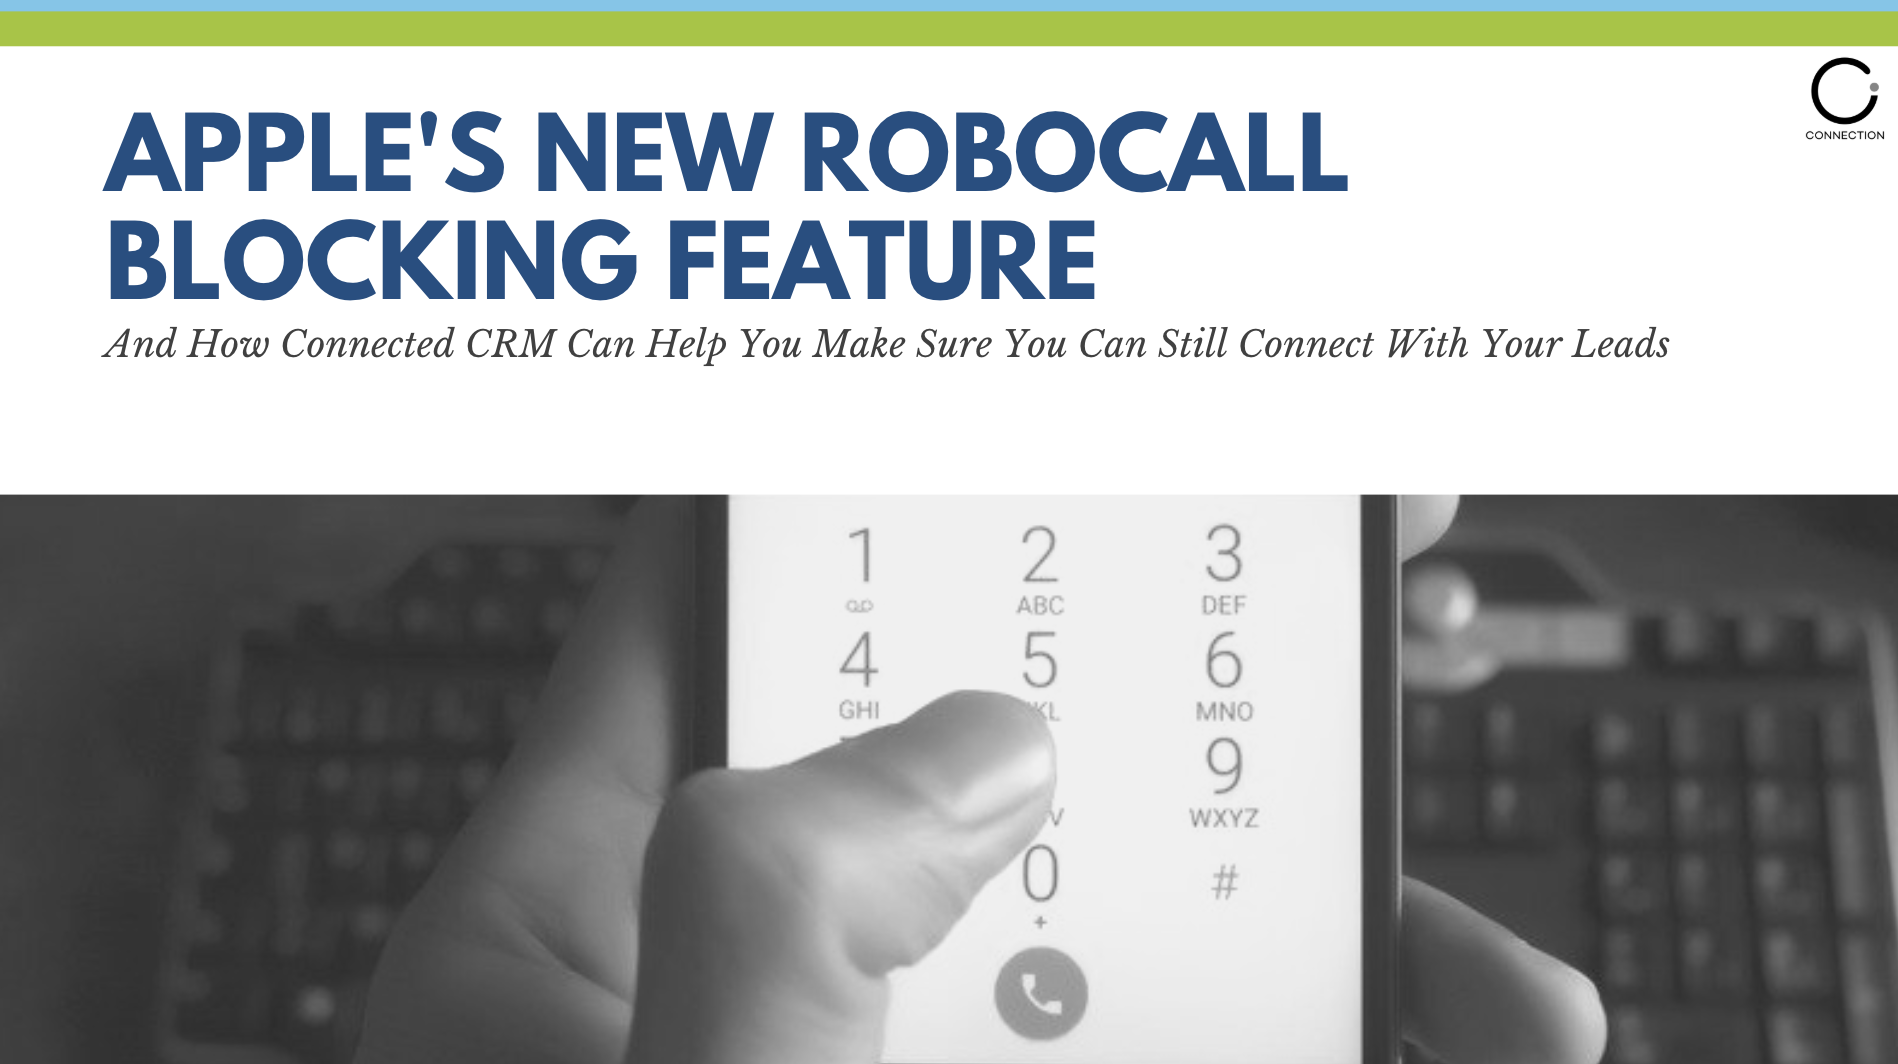 New Apple Feature - Blocking Robocalls | Connection Inc.